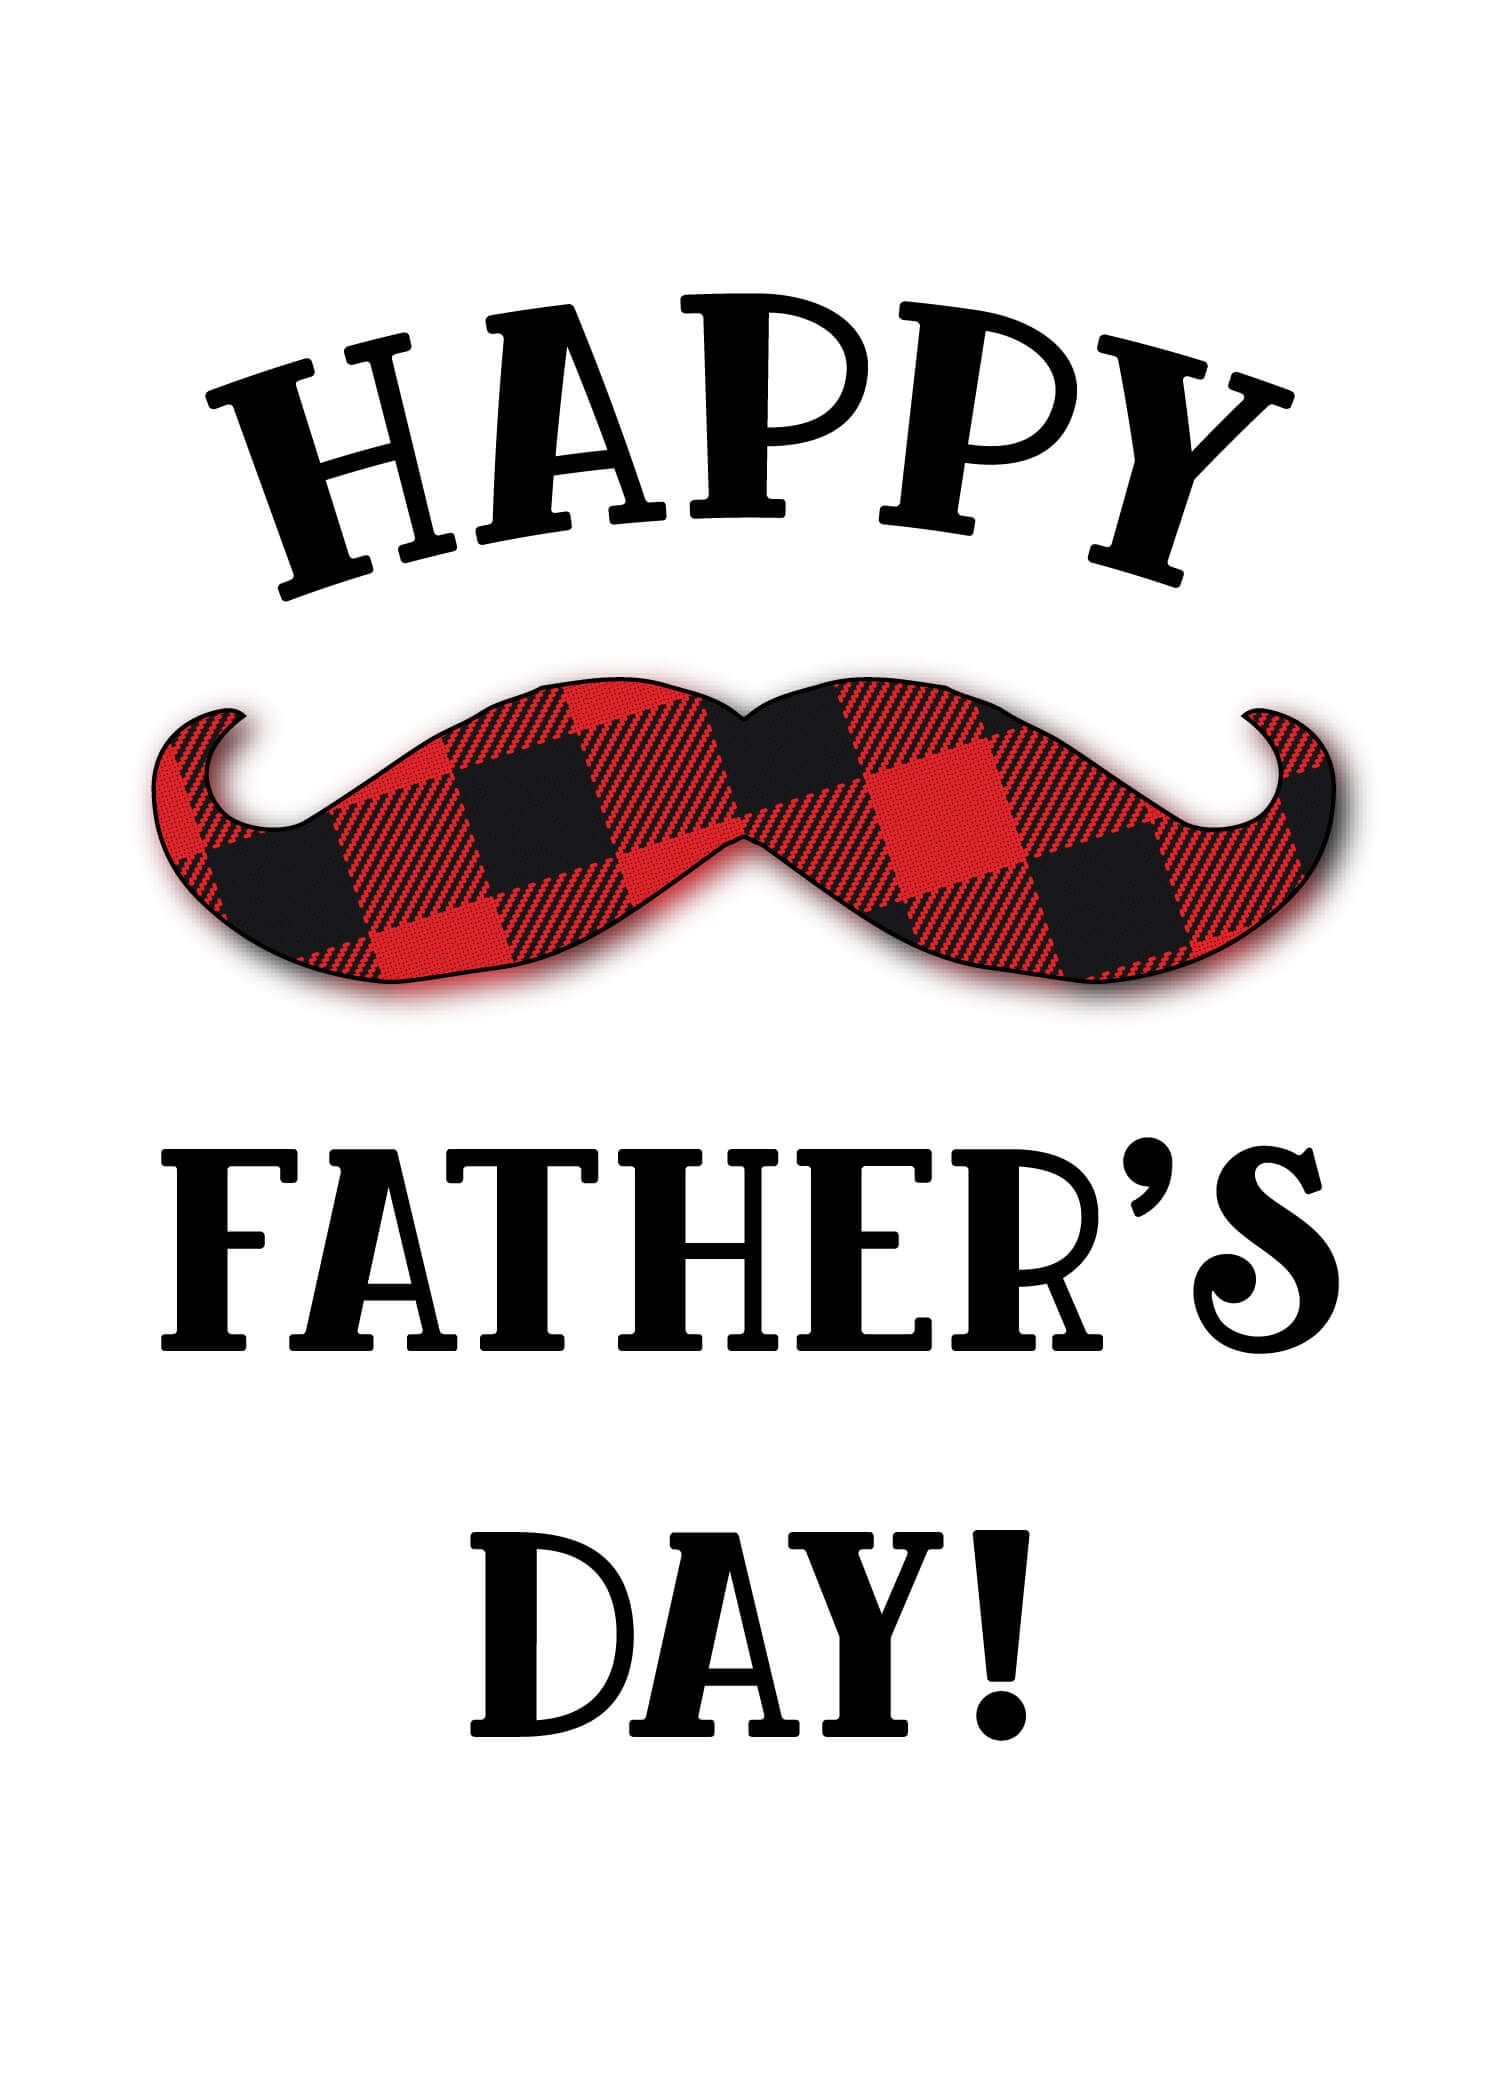 Printable Happy Fathers Day Card 01